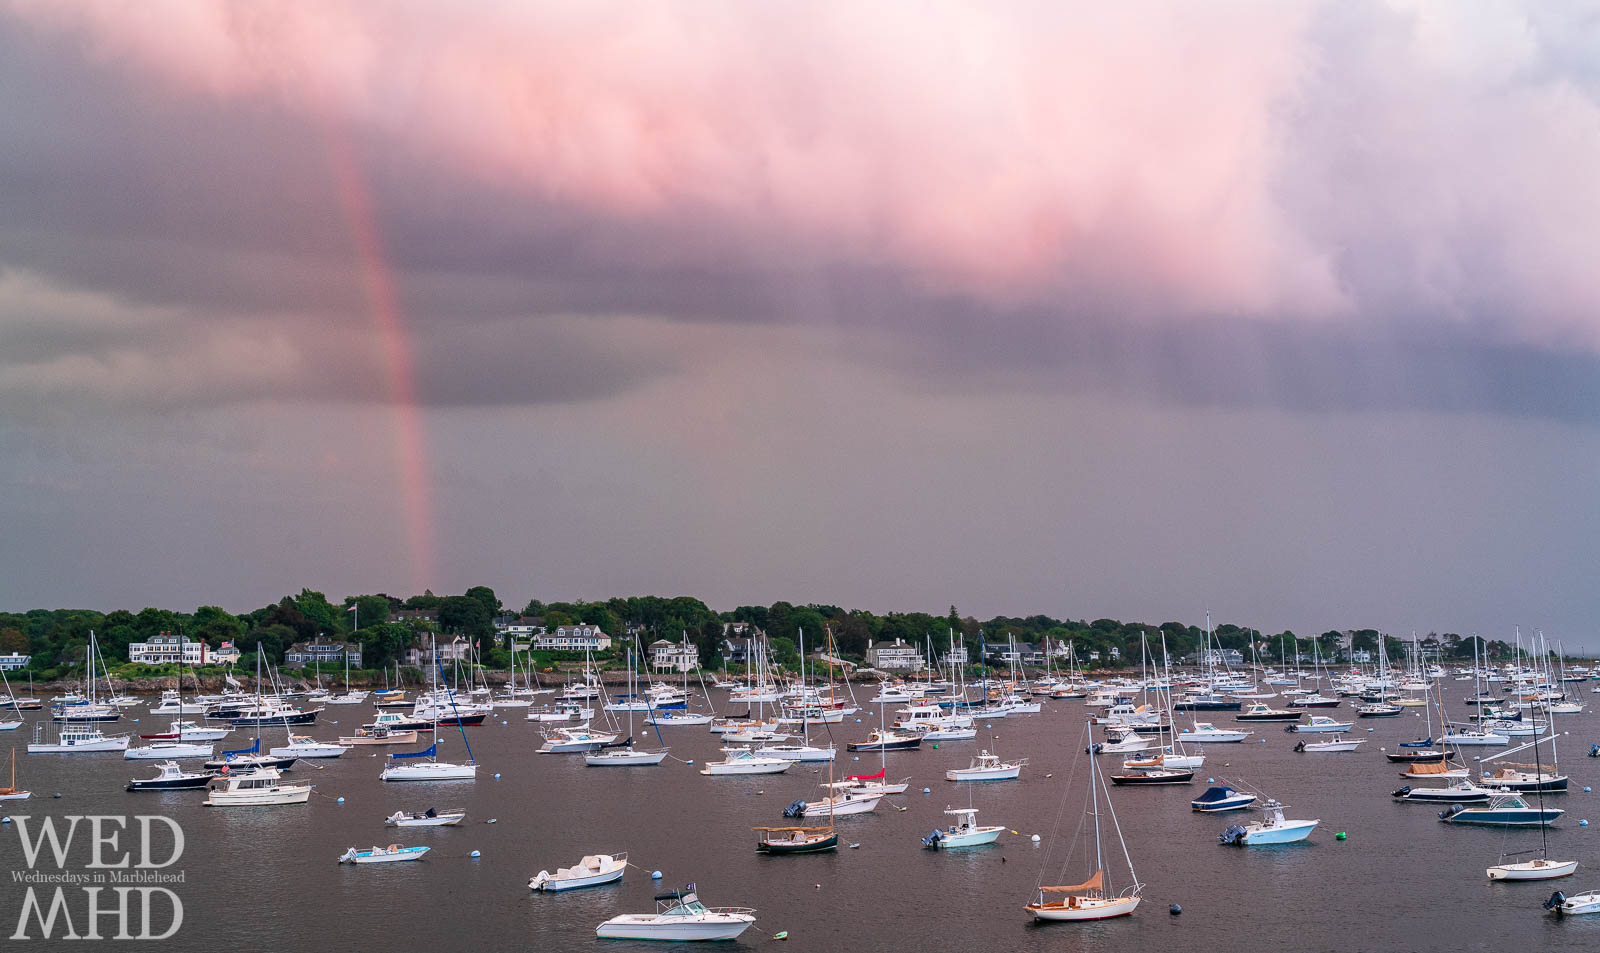 A sunset rainbow forms over Marblehead Harbor as a storm passes just as the sun set and lit the top of a cloud in pink light